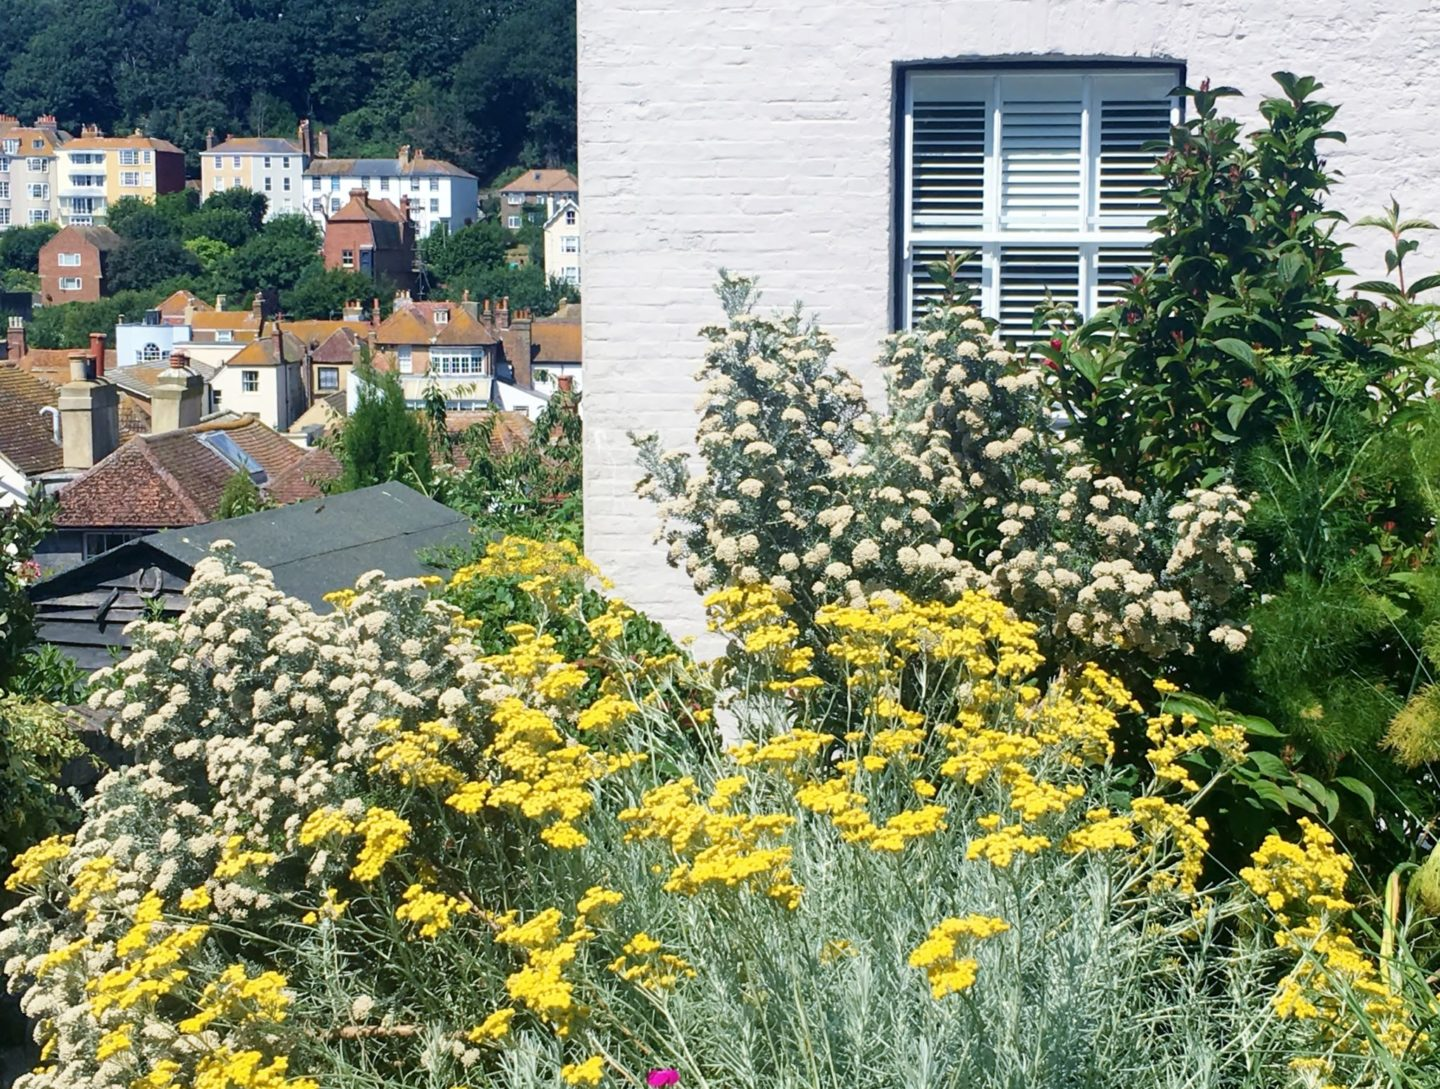 Hastings Old Town open gardens